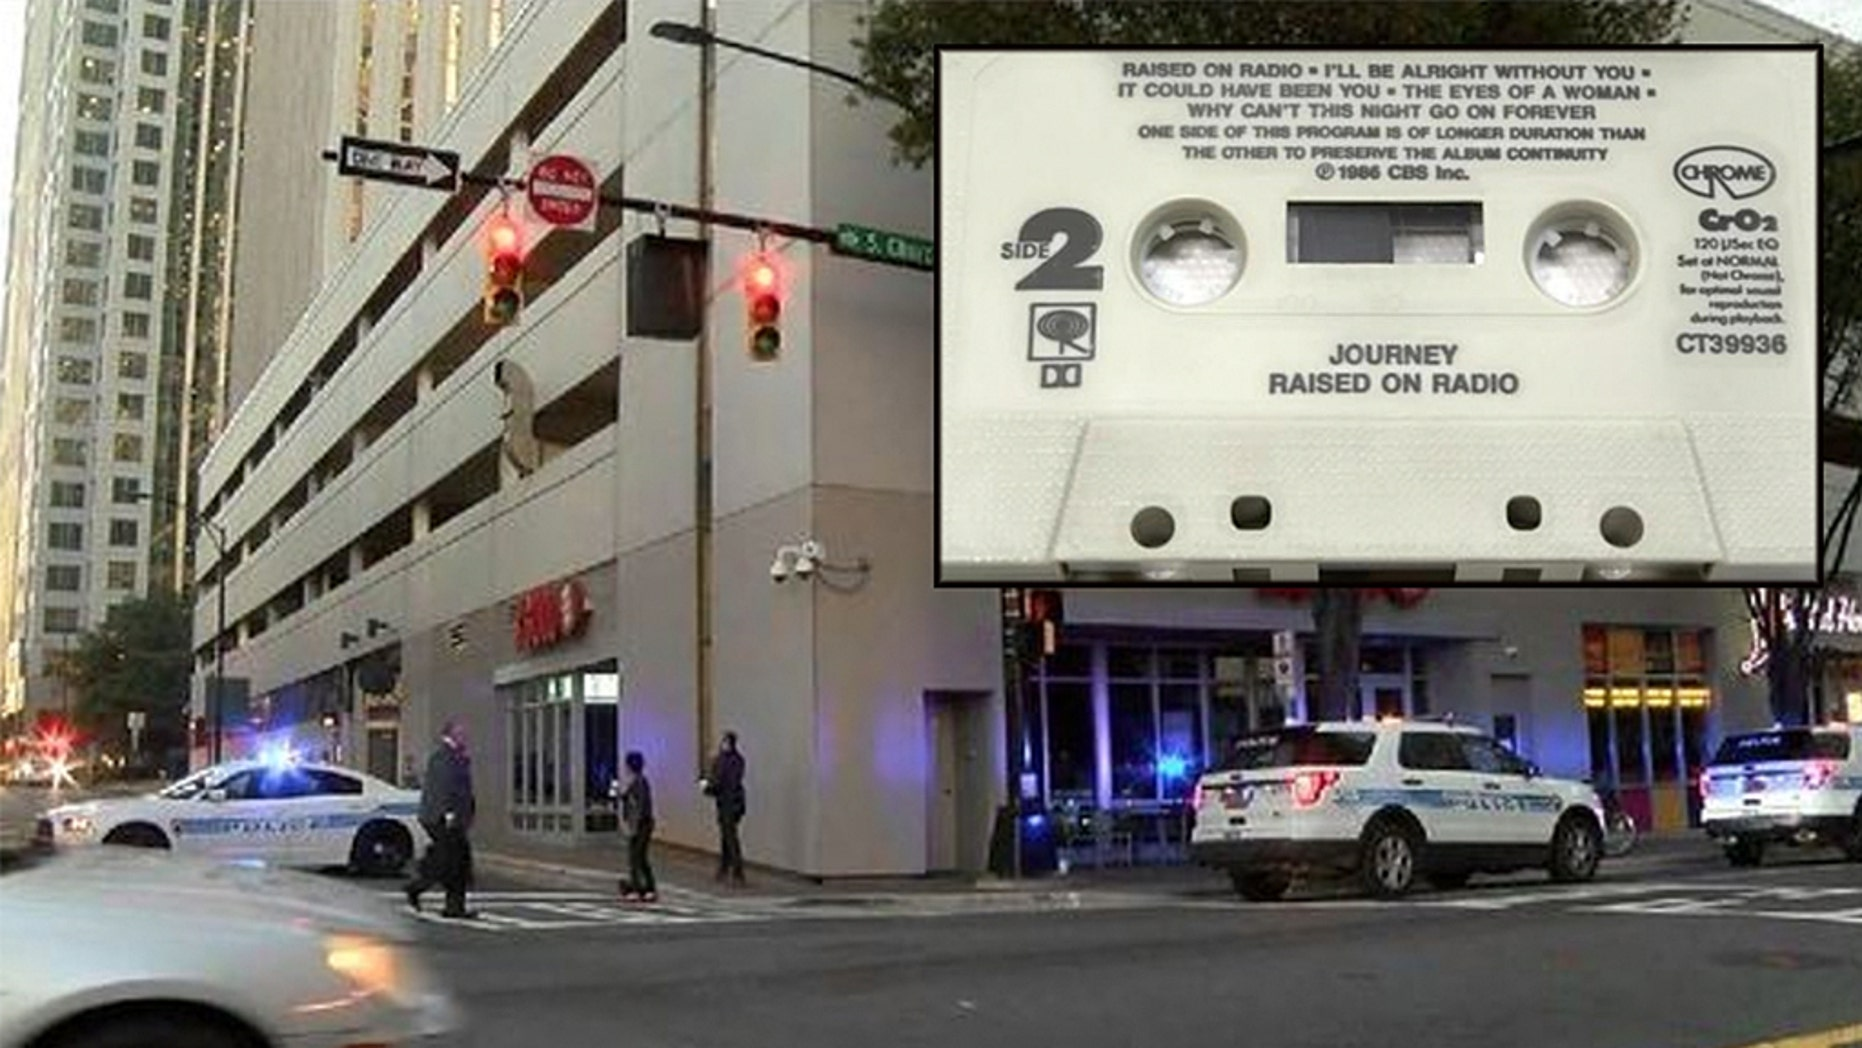 A suspicious package call at Duke Energy Building in Charlotte prompted a brief evacuation and street closures. It turned out to be a parcel containing a Journey cassette tape (not pictured).